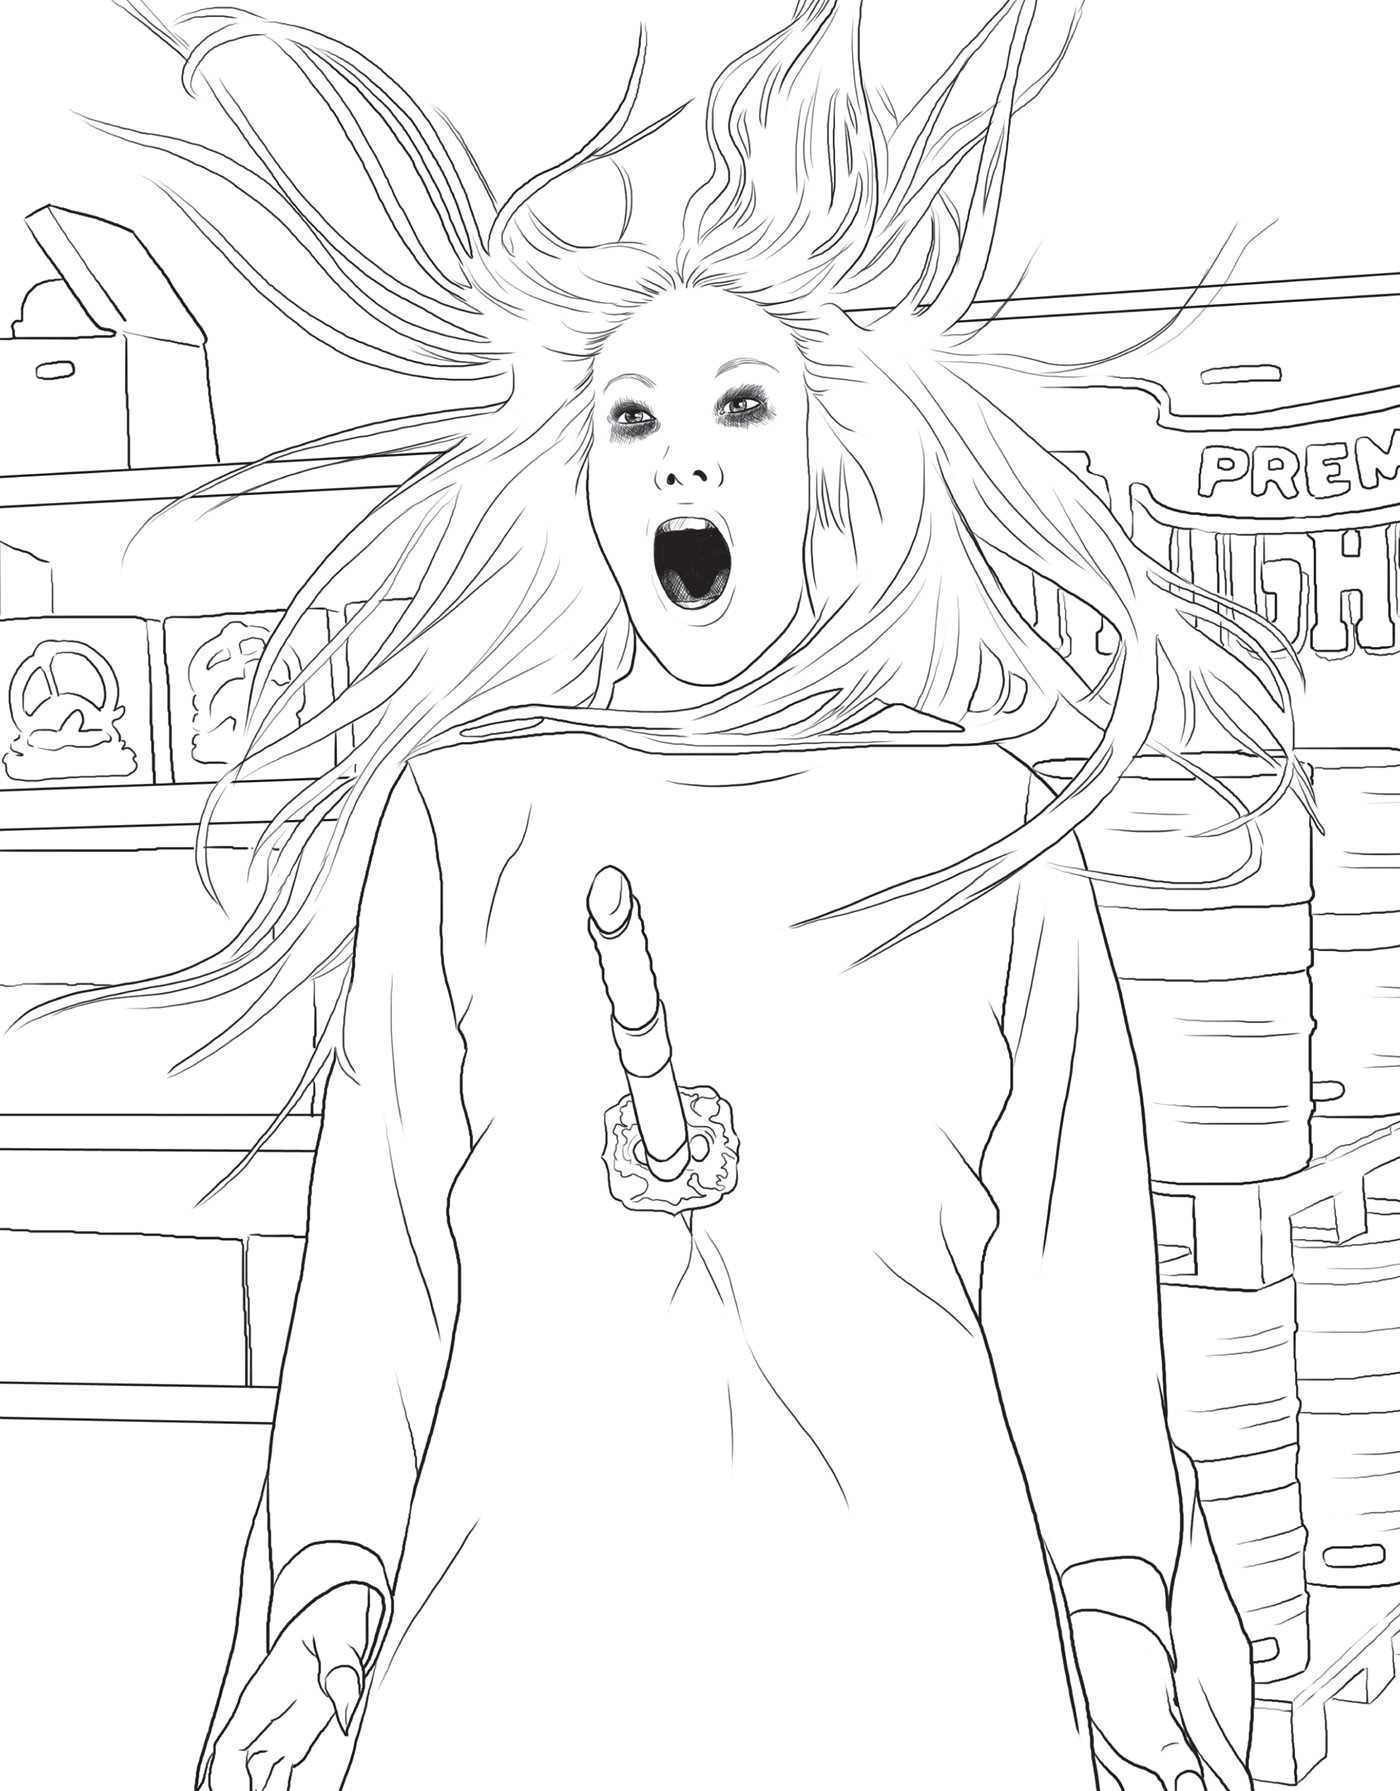 The Official Supernatural Coloring Book: Monsters, Demons